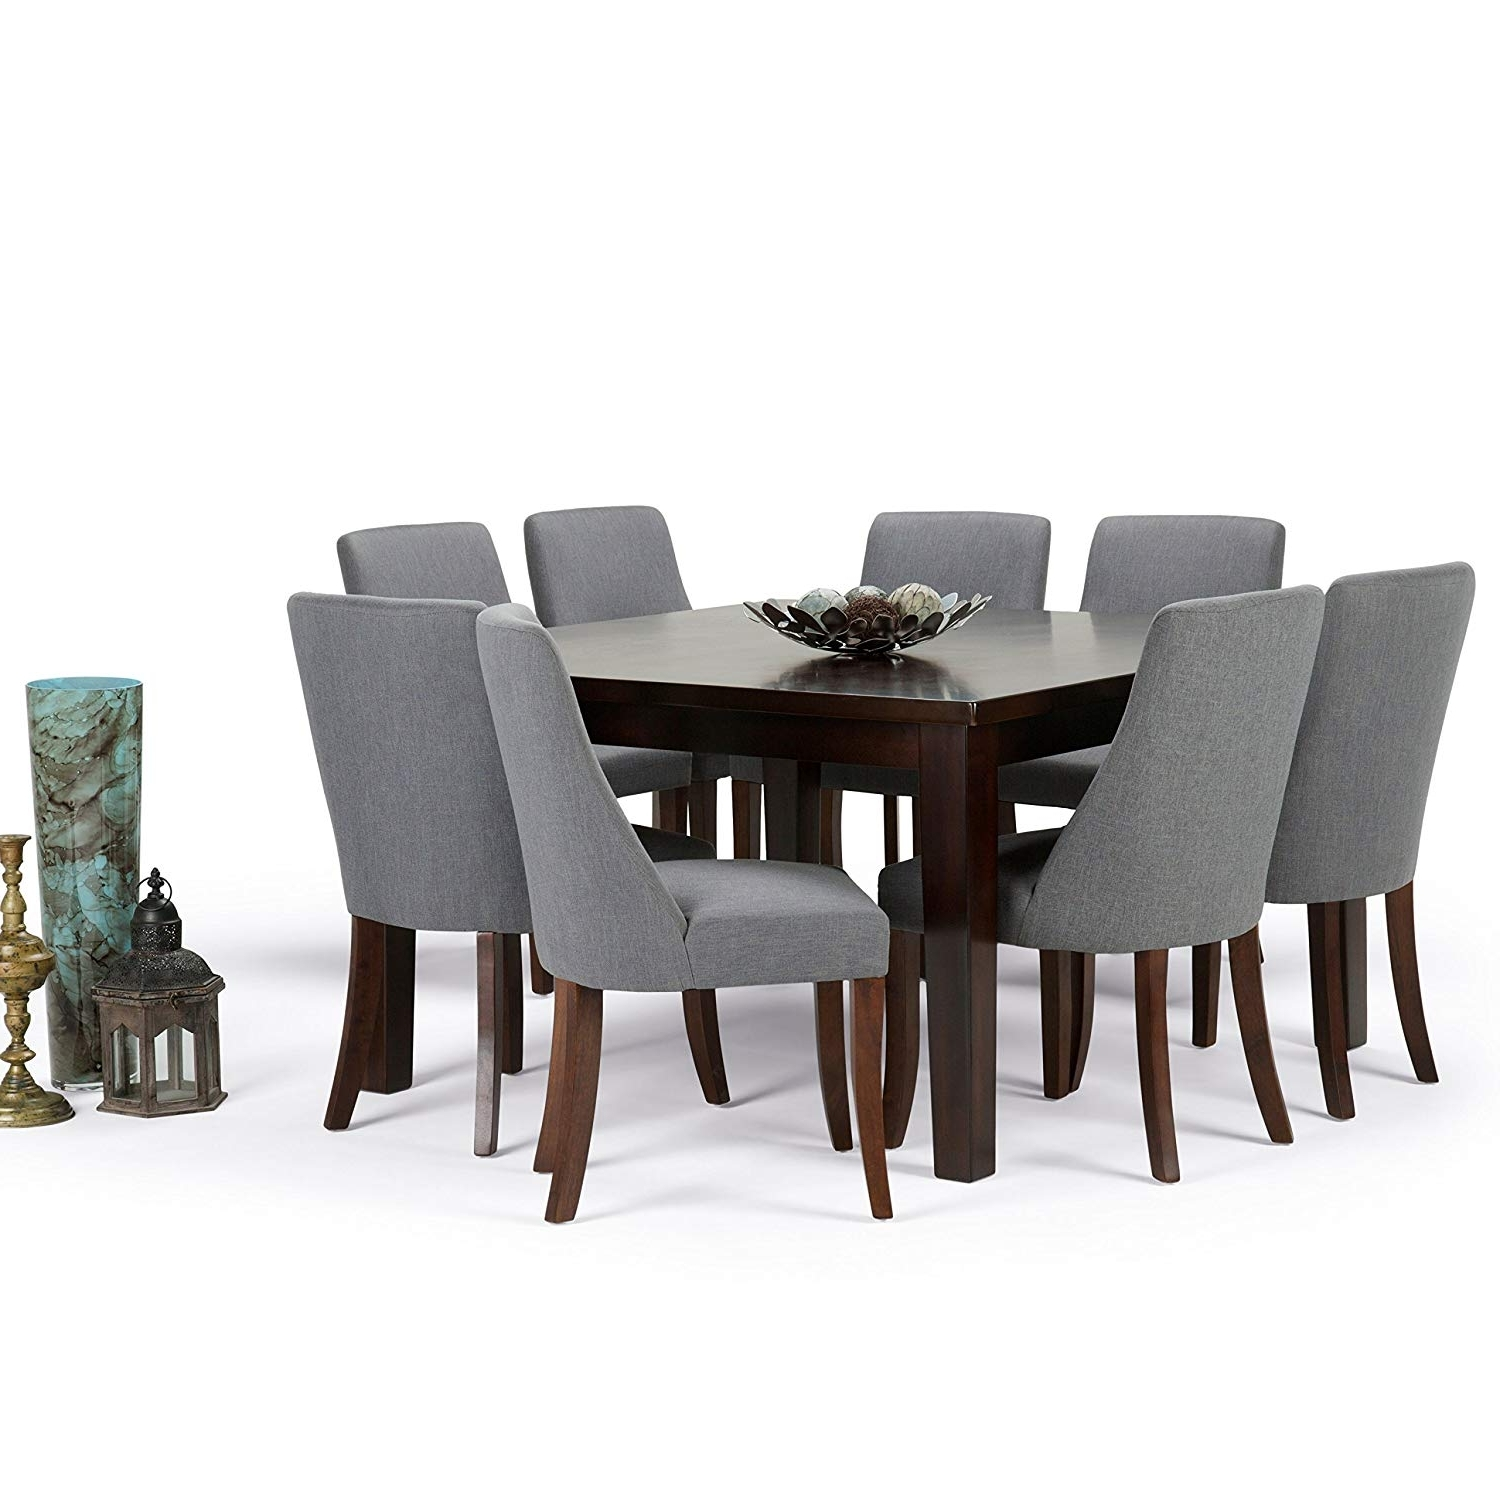 Amazon: Simpli Home Walden 9 Piece Dining Set, Slate Grey Throughout Widely Used Walden 9 Piece Extension Dining Sets (View 4 of 25)